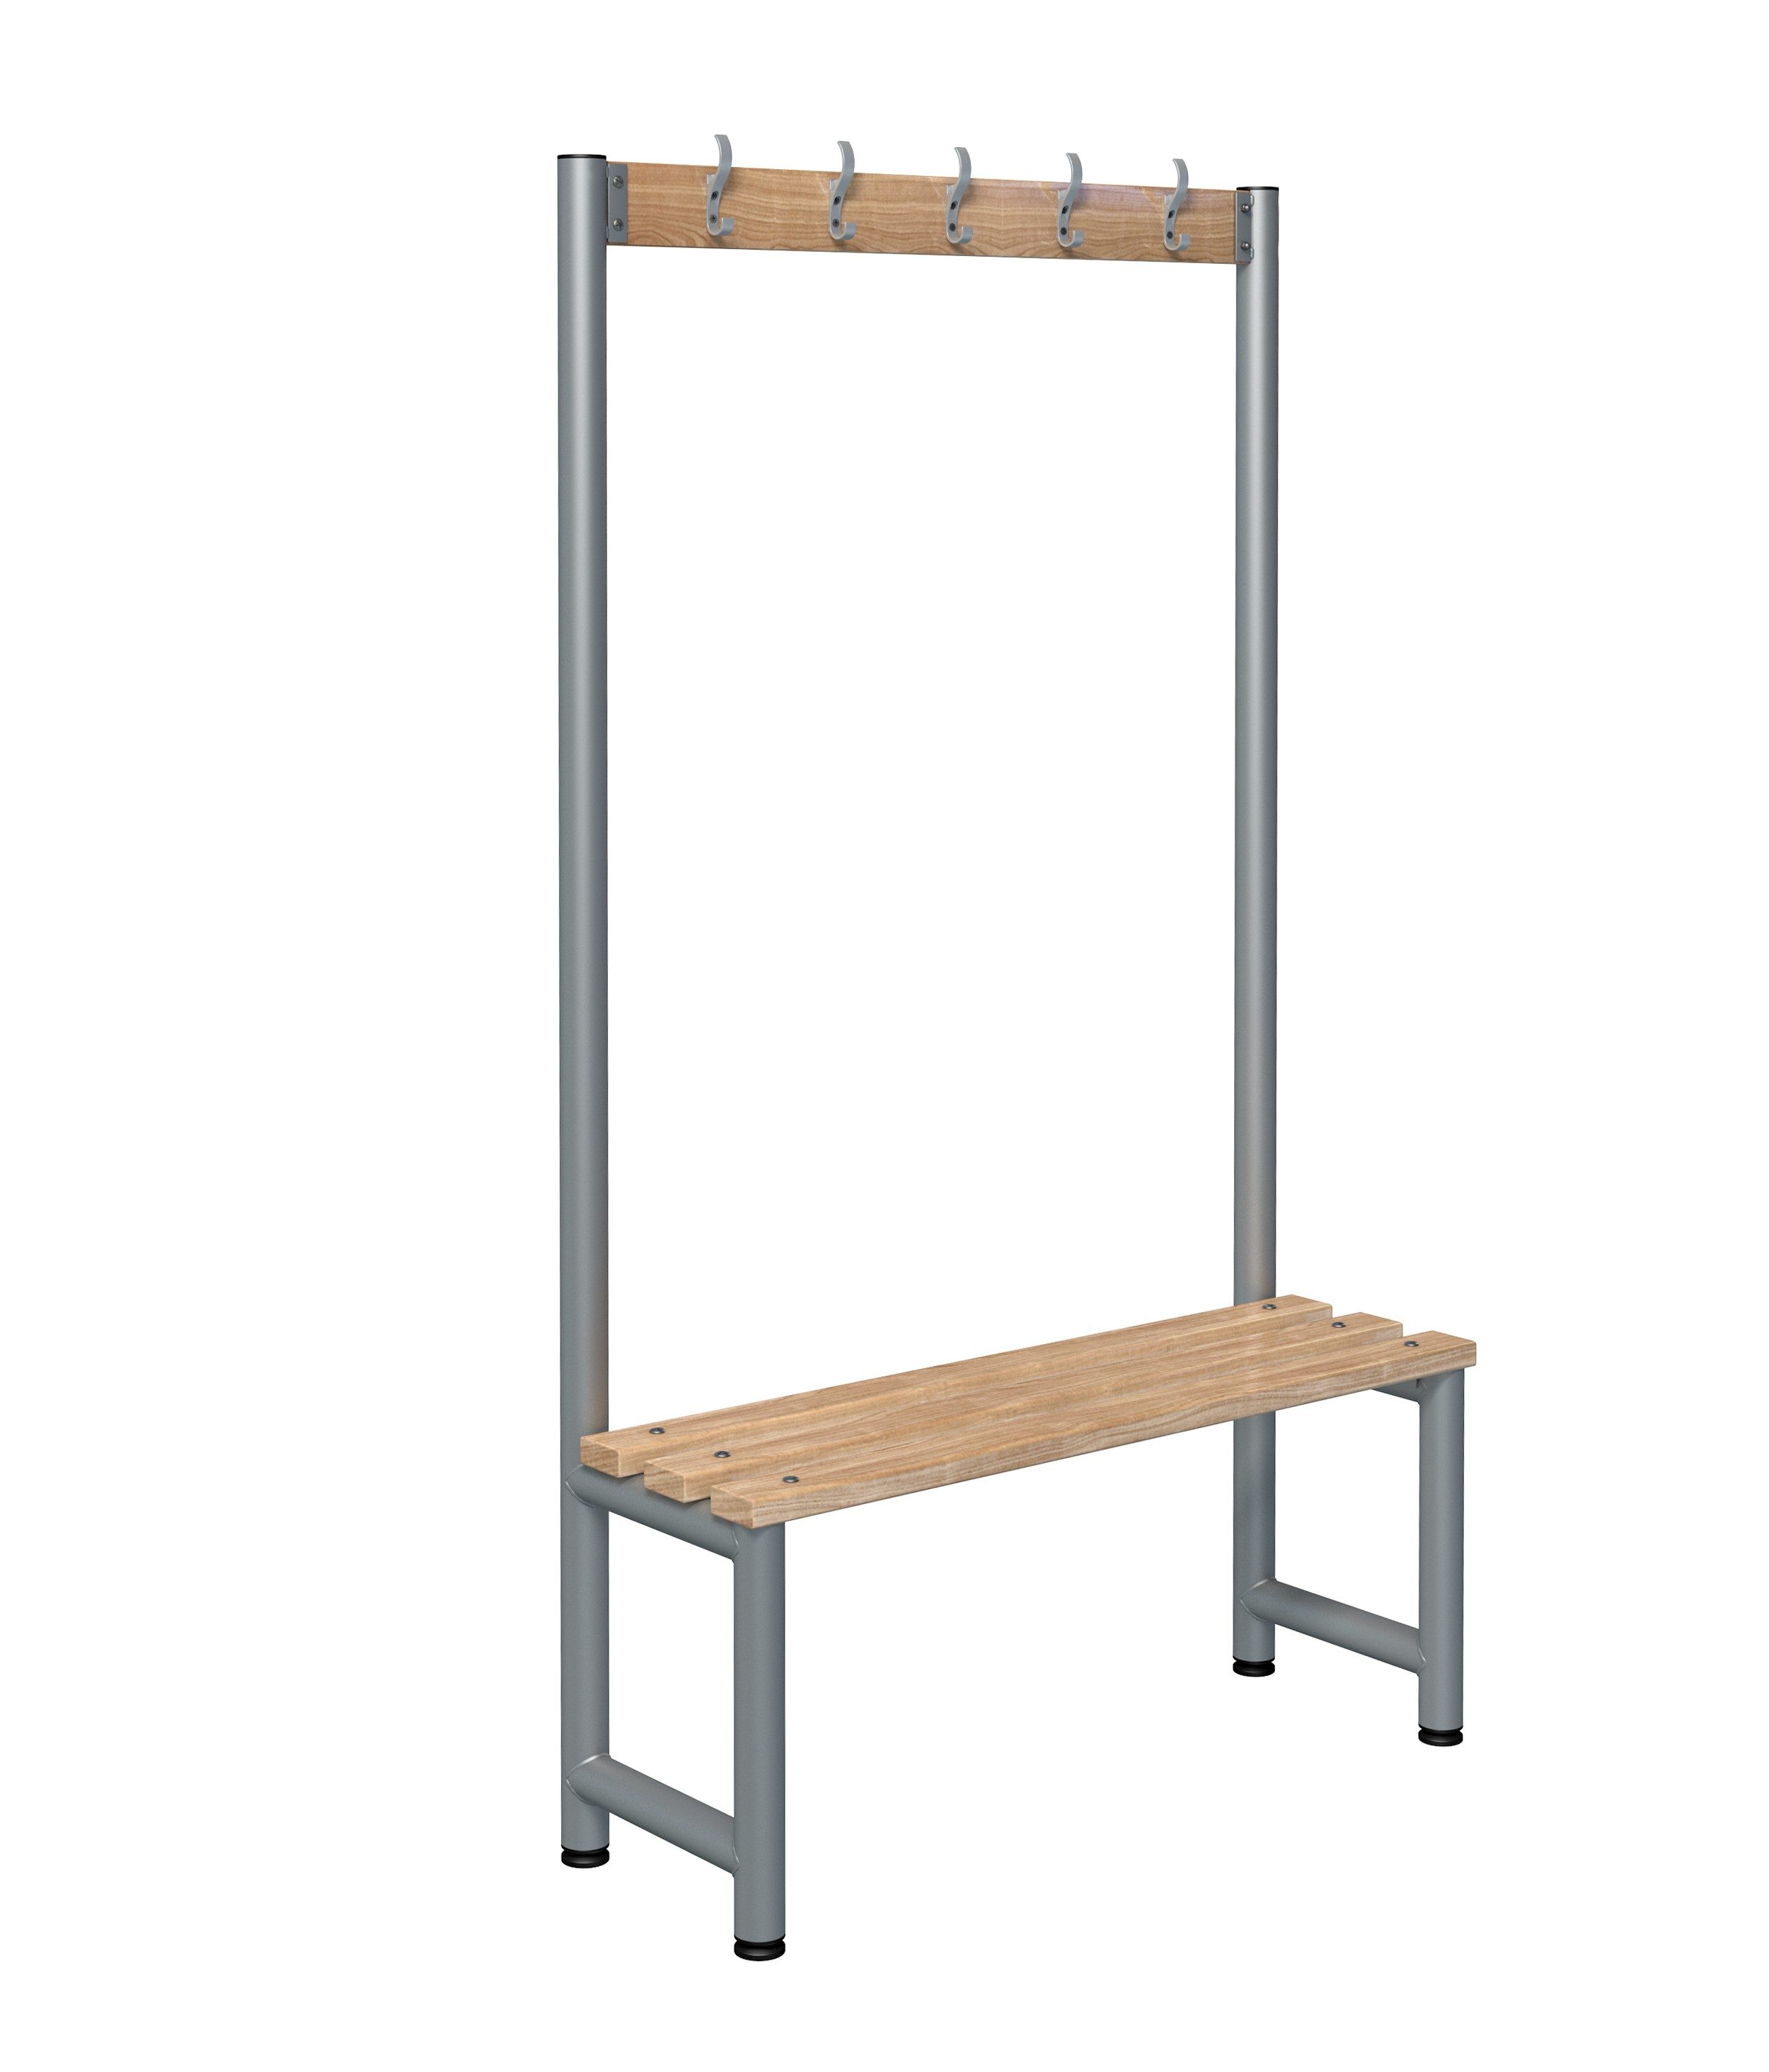 Single Sided Hook Bench Type D - Infant